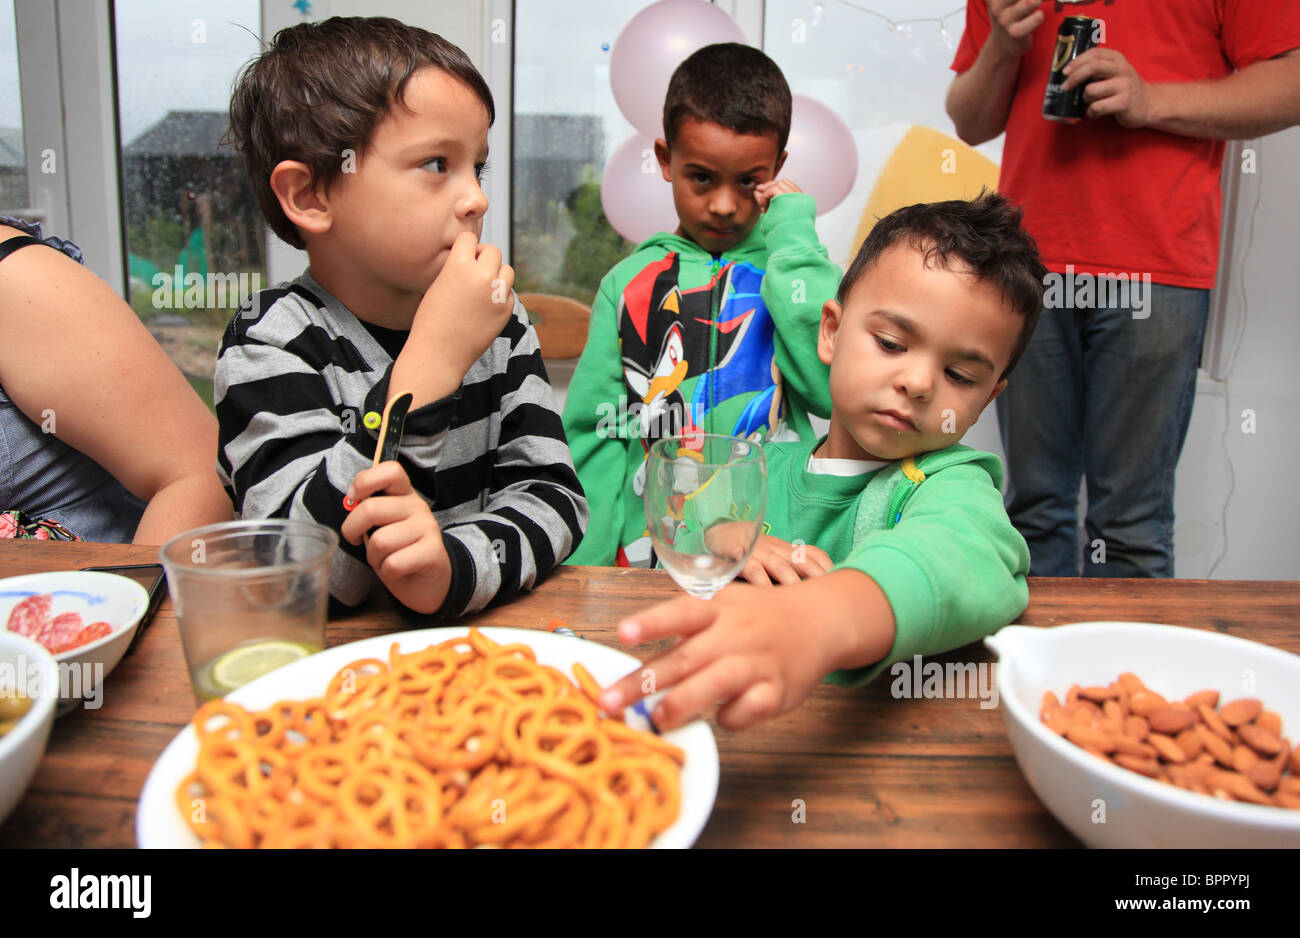 Kids party - Stock Image